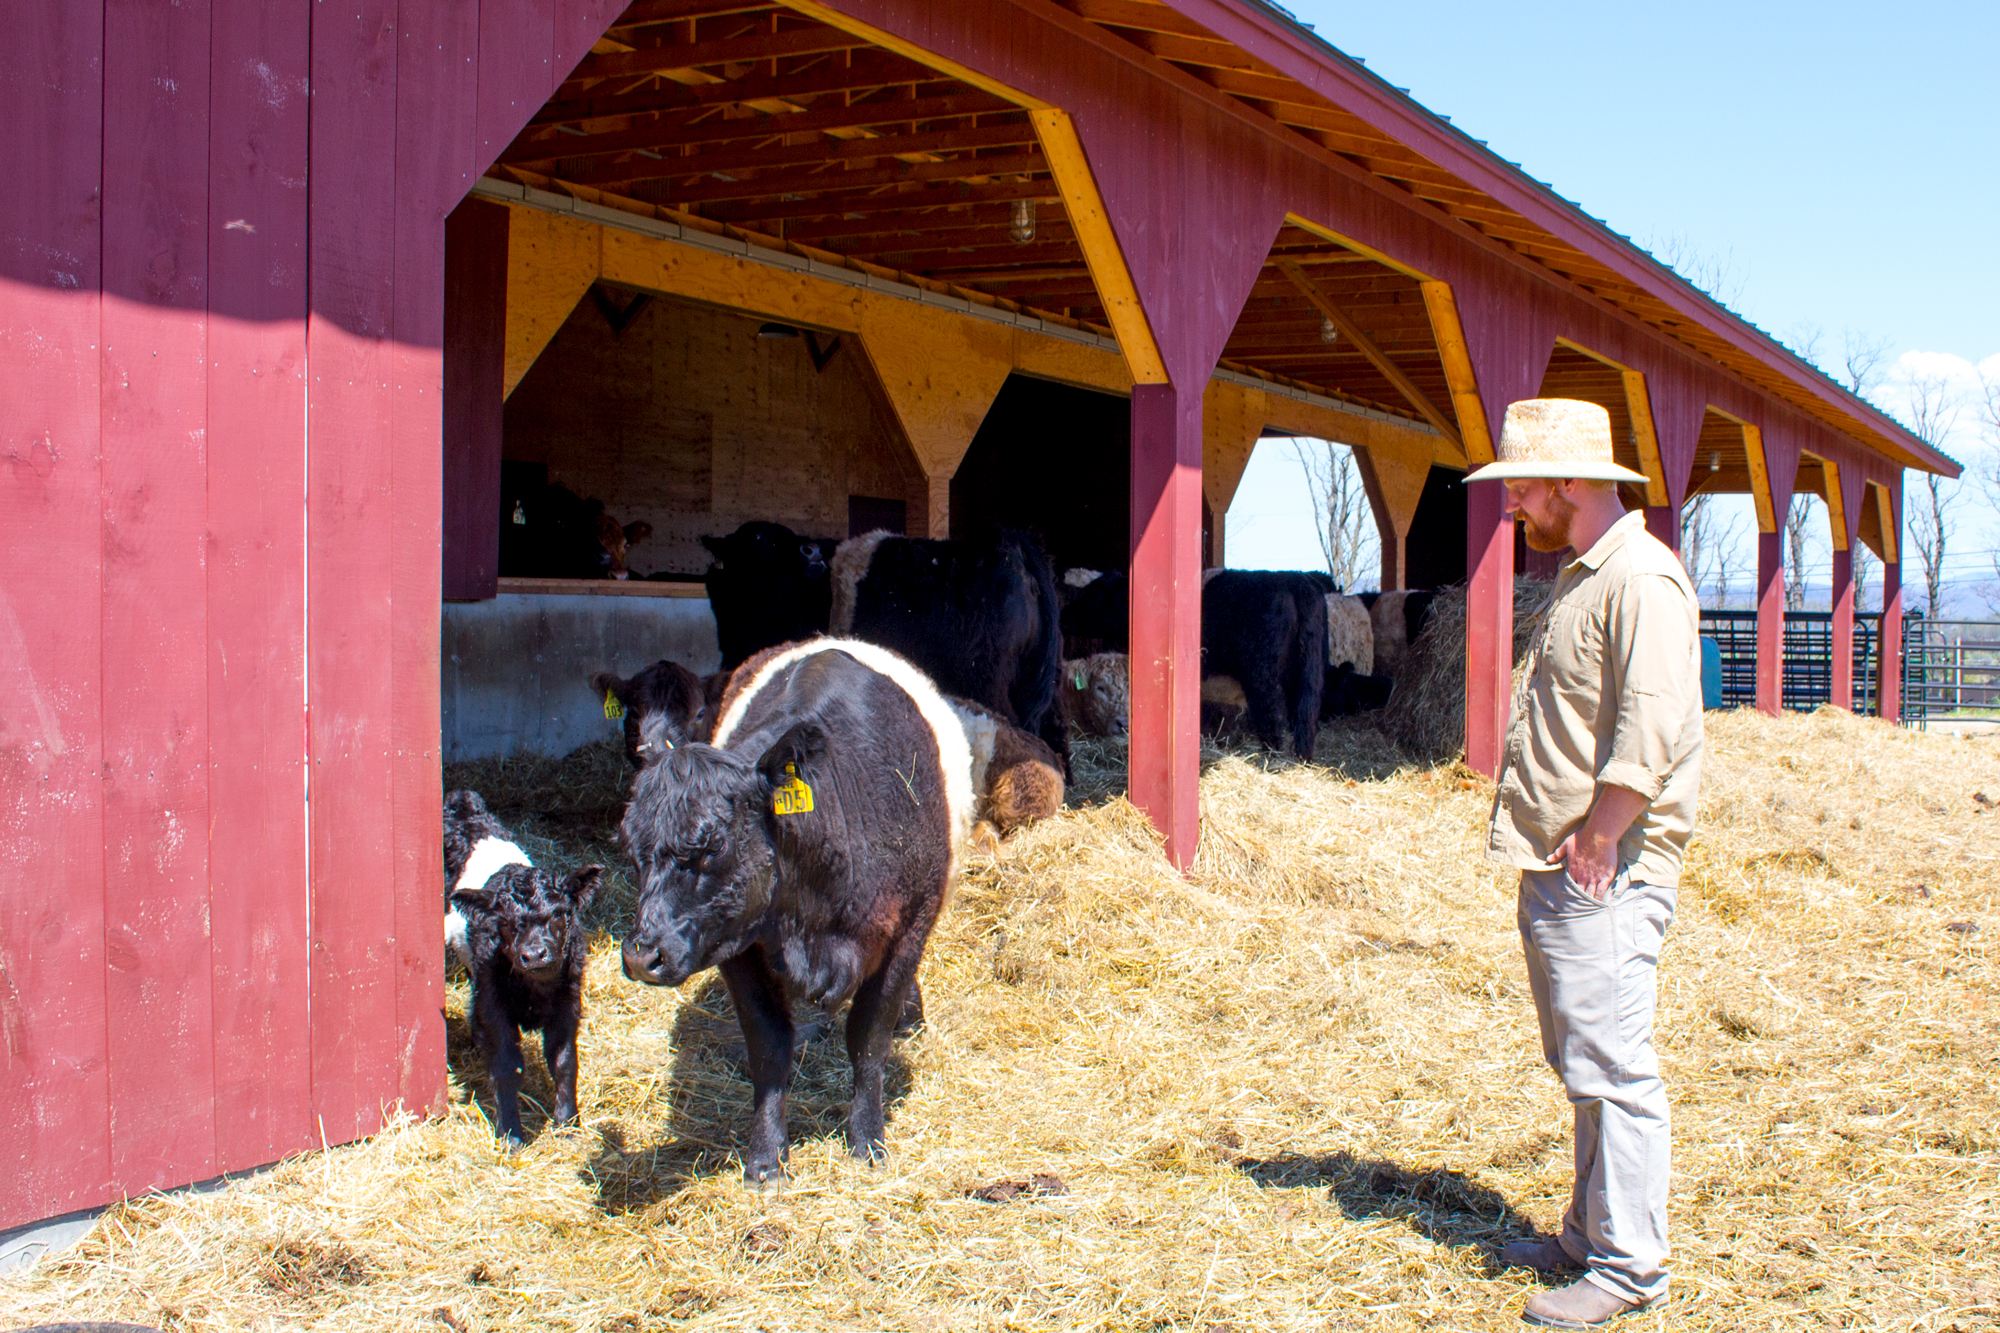 The cattle at Philo Ridge Farm eager to get out of the Pack Barn and into green pasture on a warm spring day.